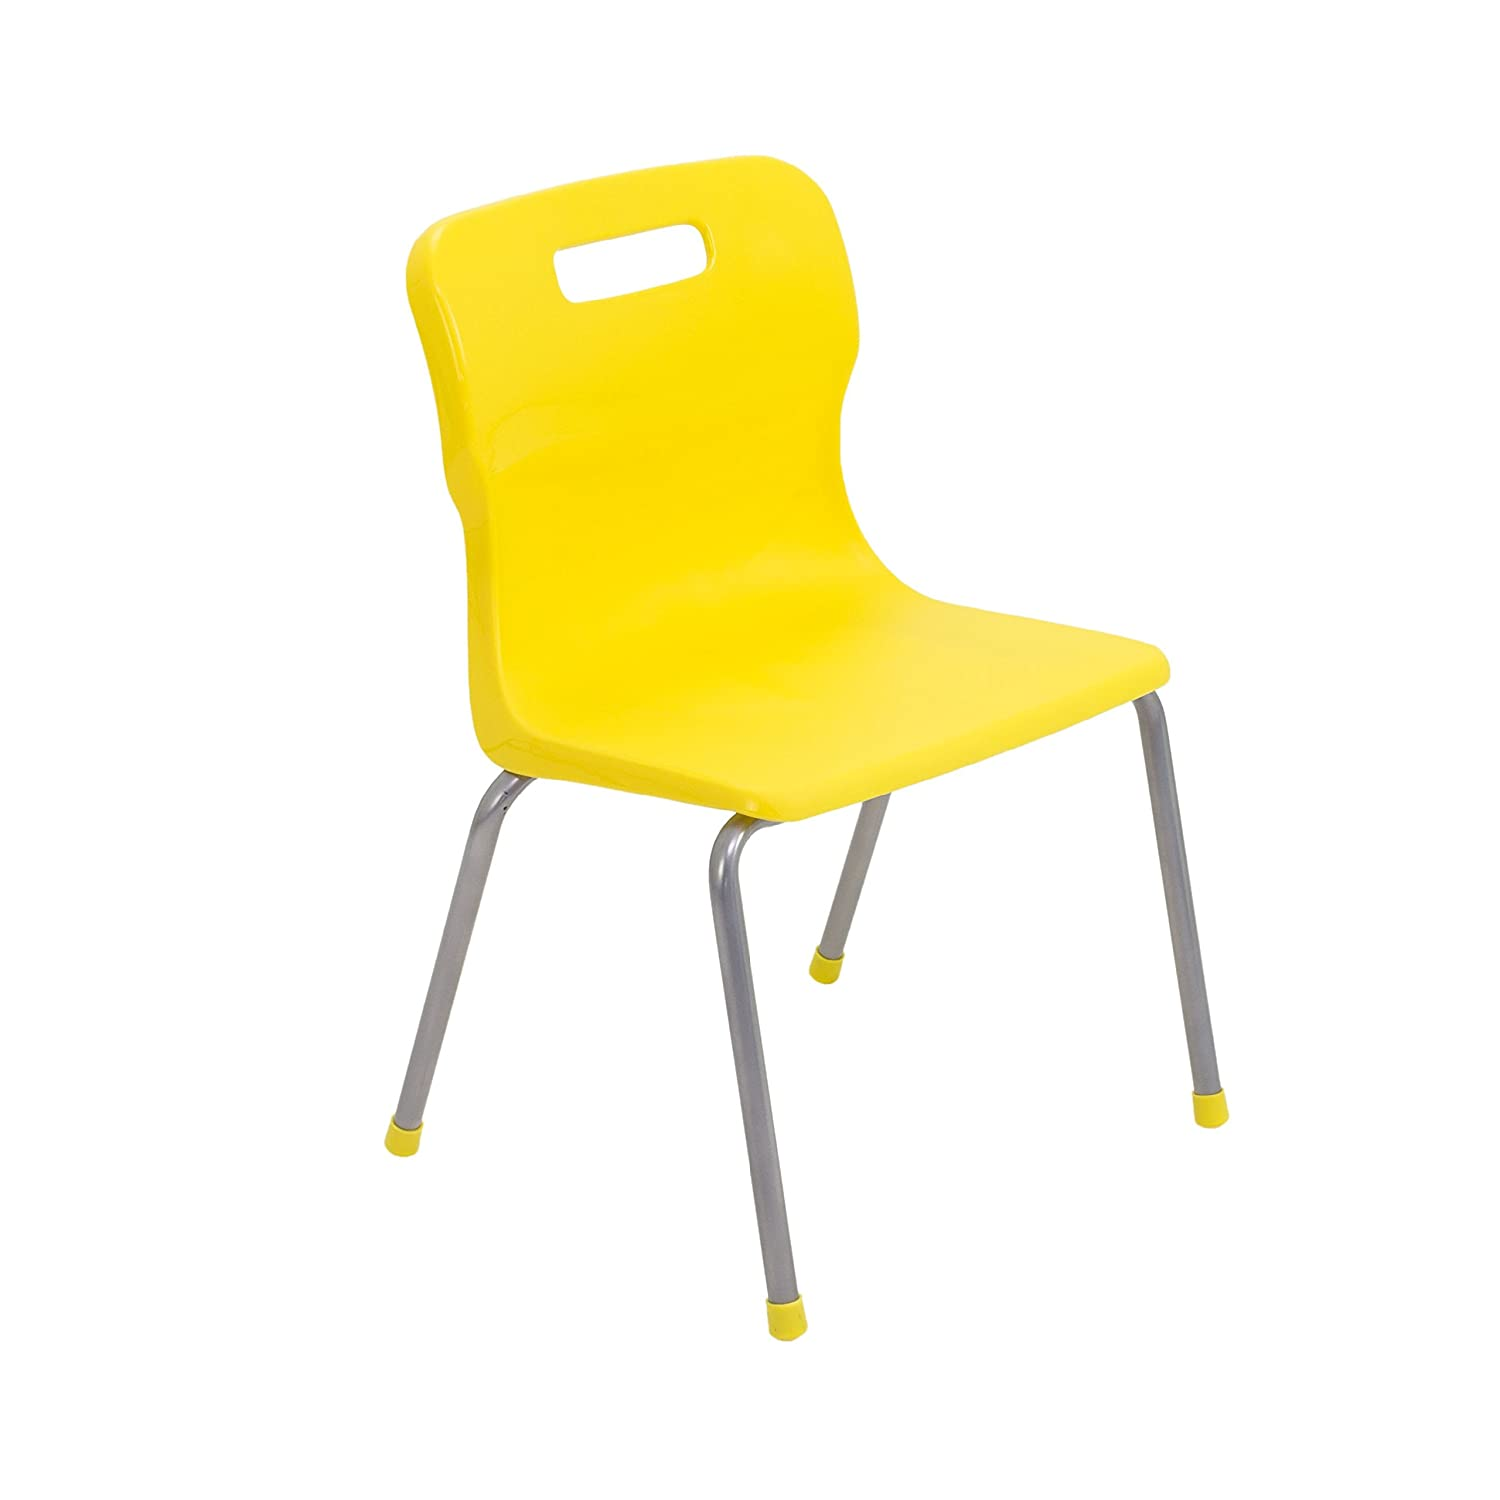 Titan 4 Leg Classroom Chair - Size 3, Ages 5-7 Years, Plastic, Yellow T13-Y